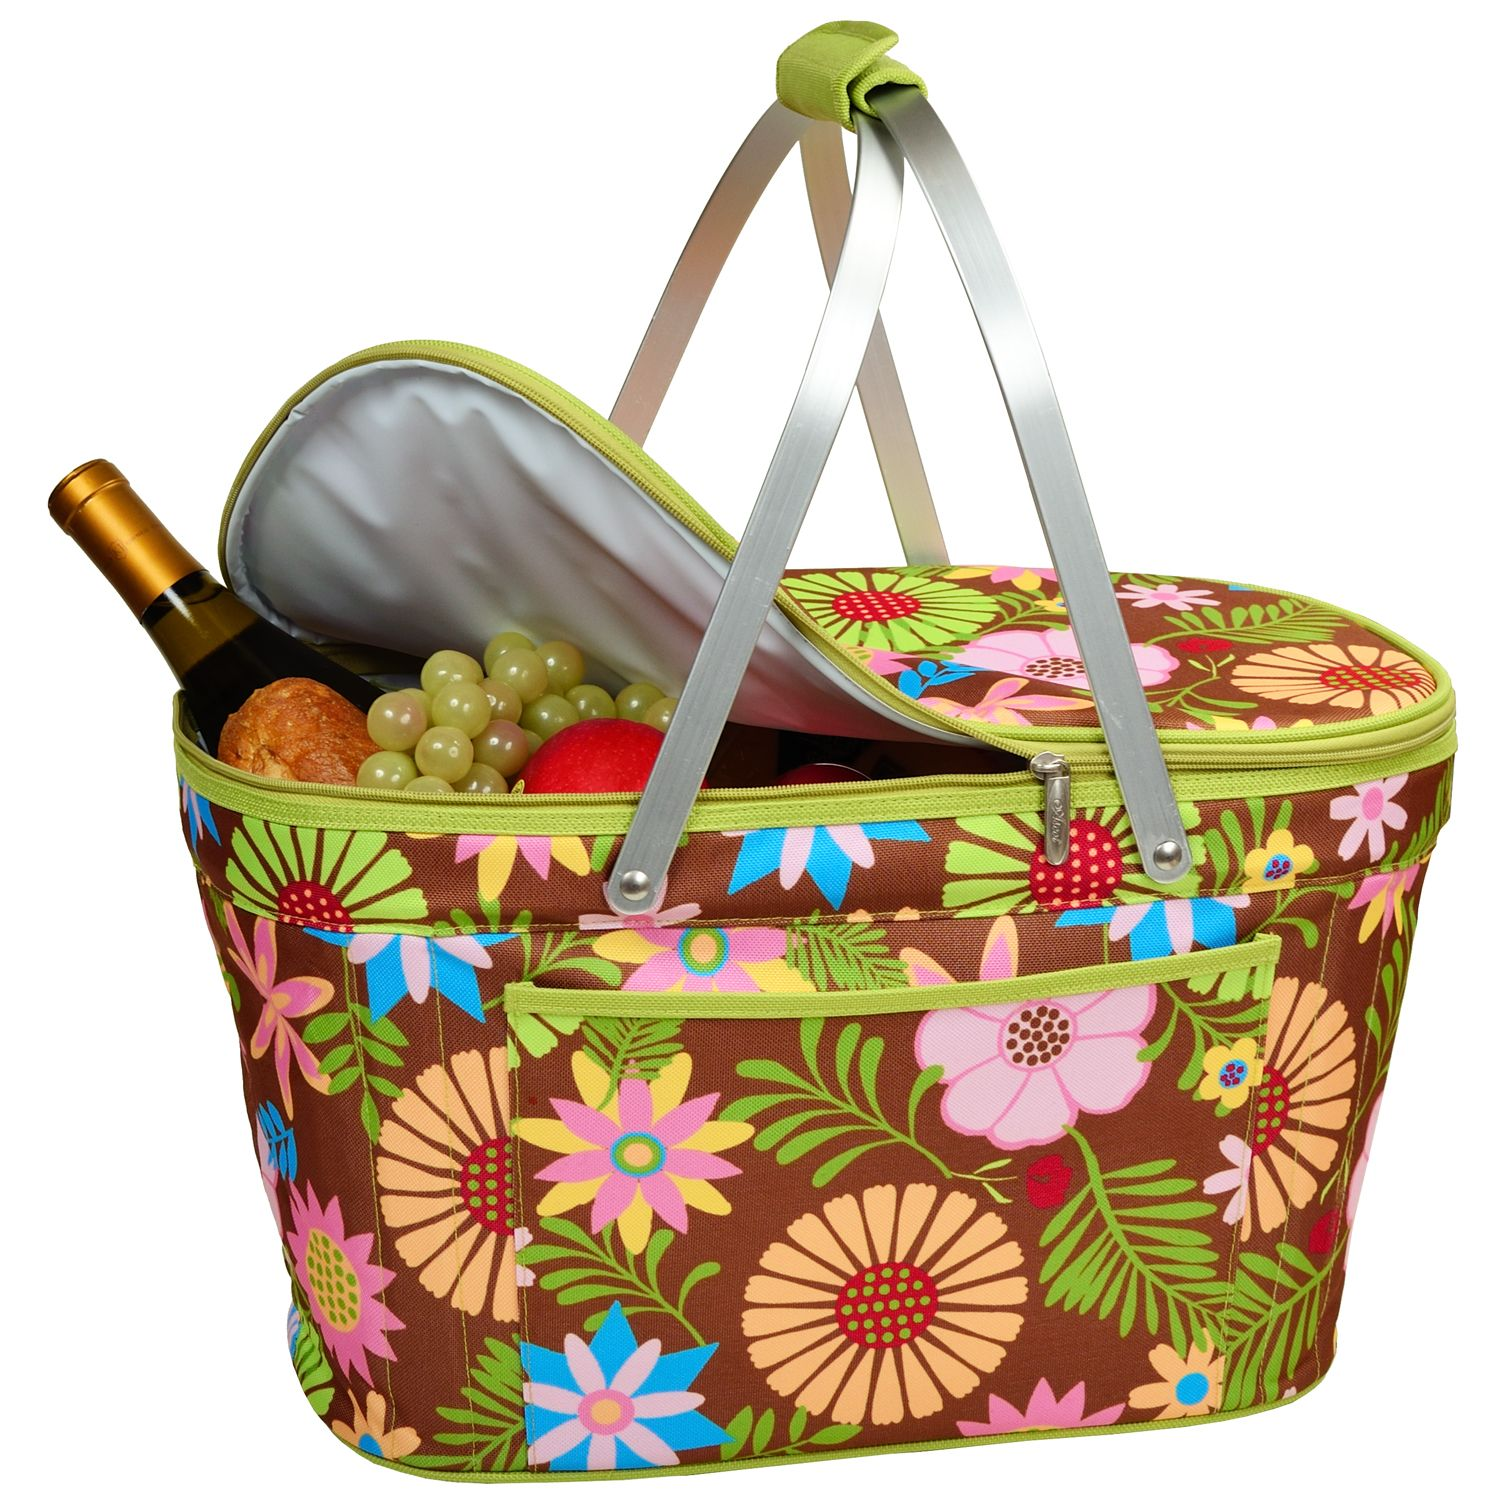 Collapsible insulated basket floral pattern picnic at